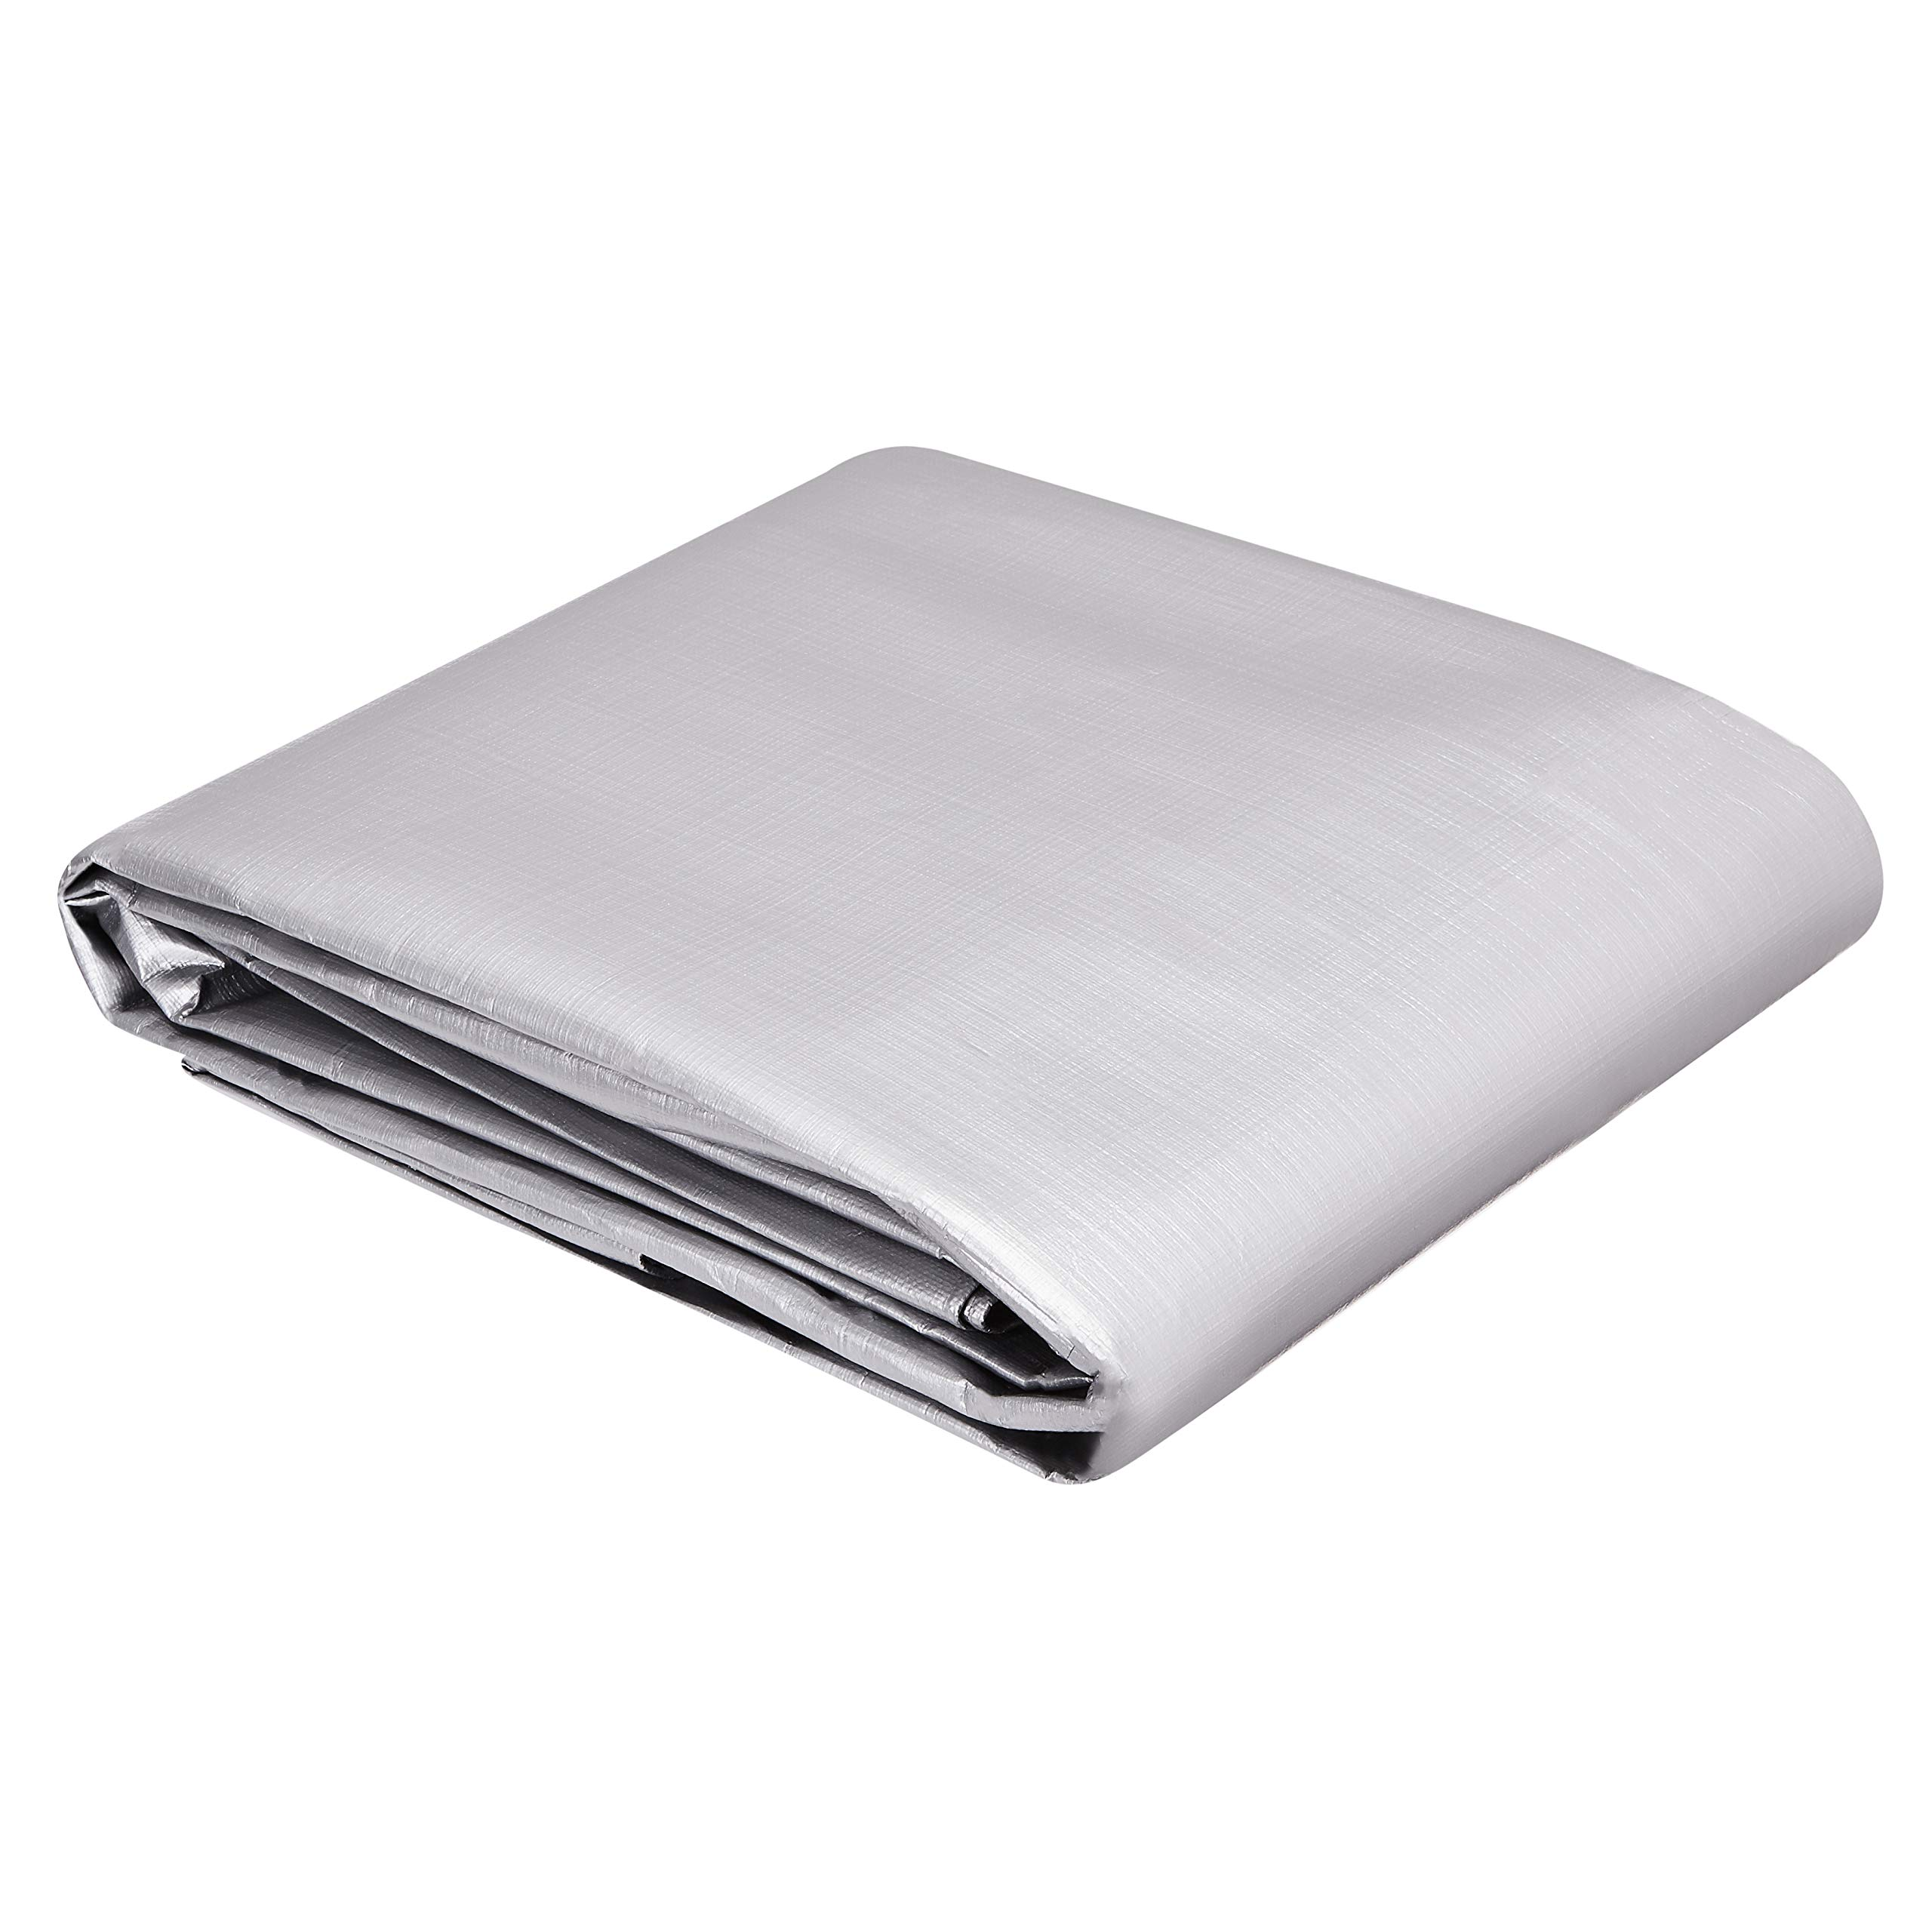 AmazonCommercial Multi Purpose Waterproof Poly Tarp Cover, 12 X 16 FT, 16MIL Thick, Silver/Black, 2-Pack